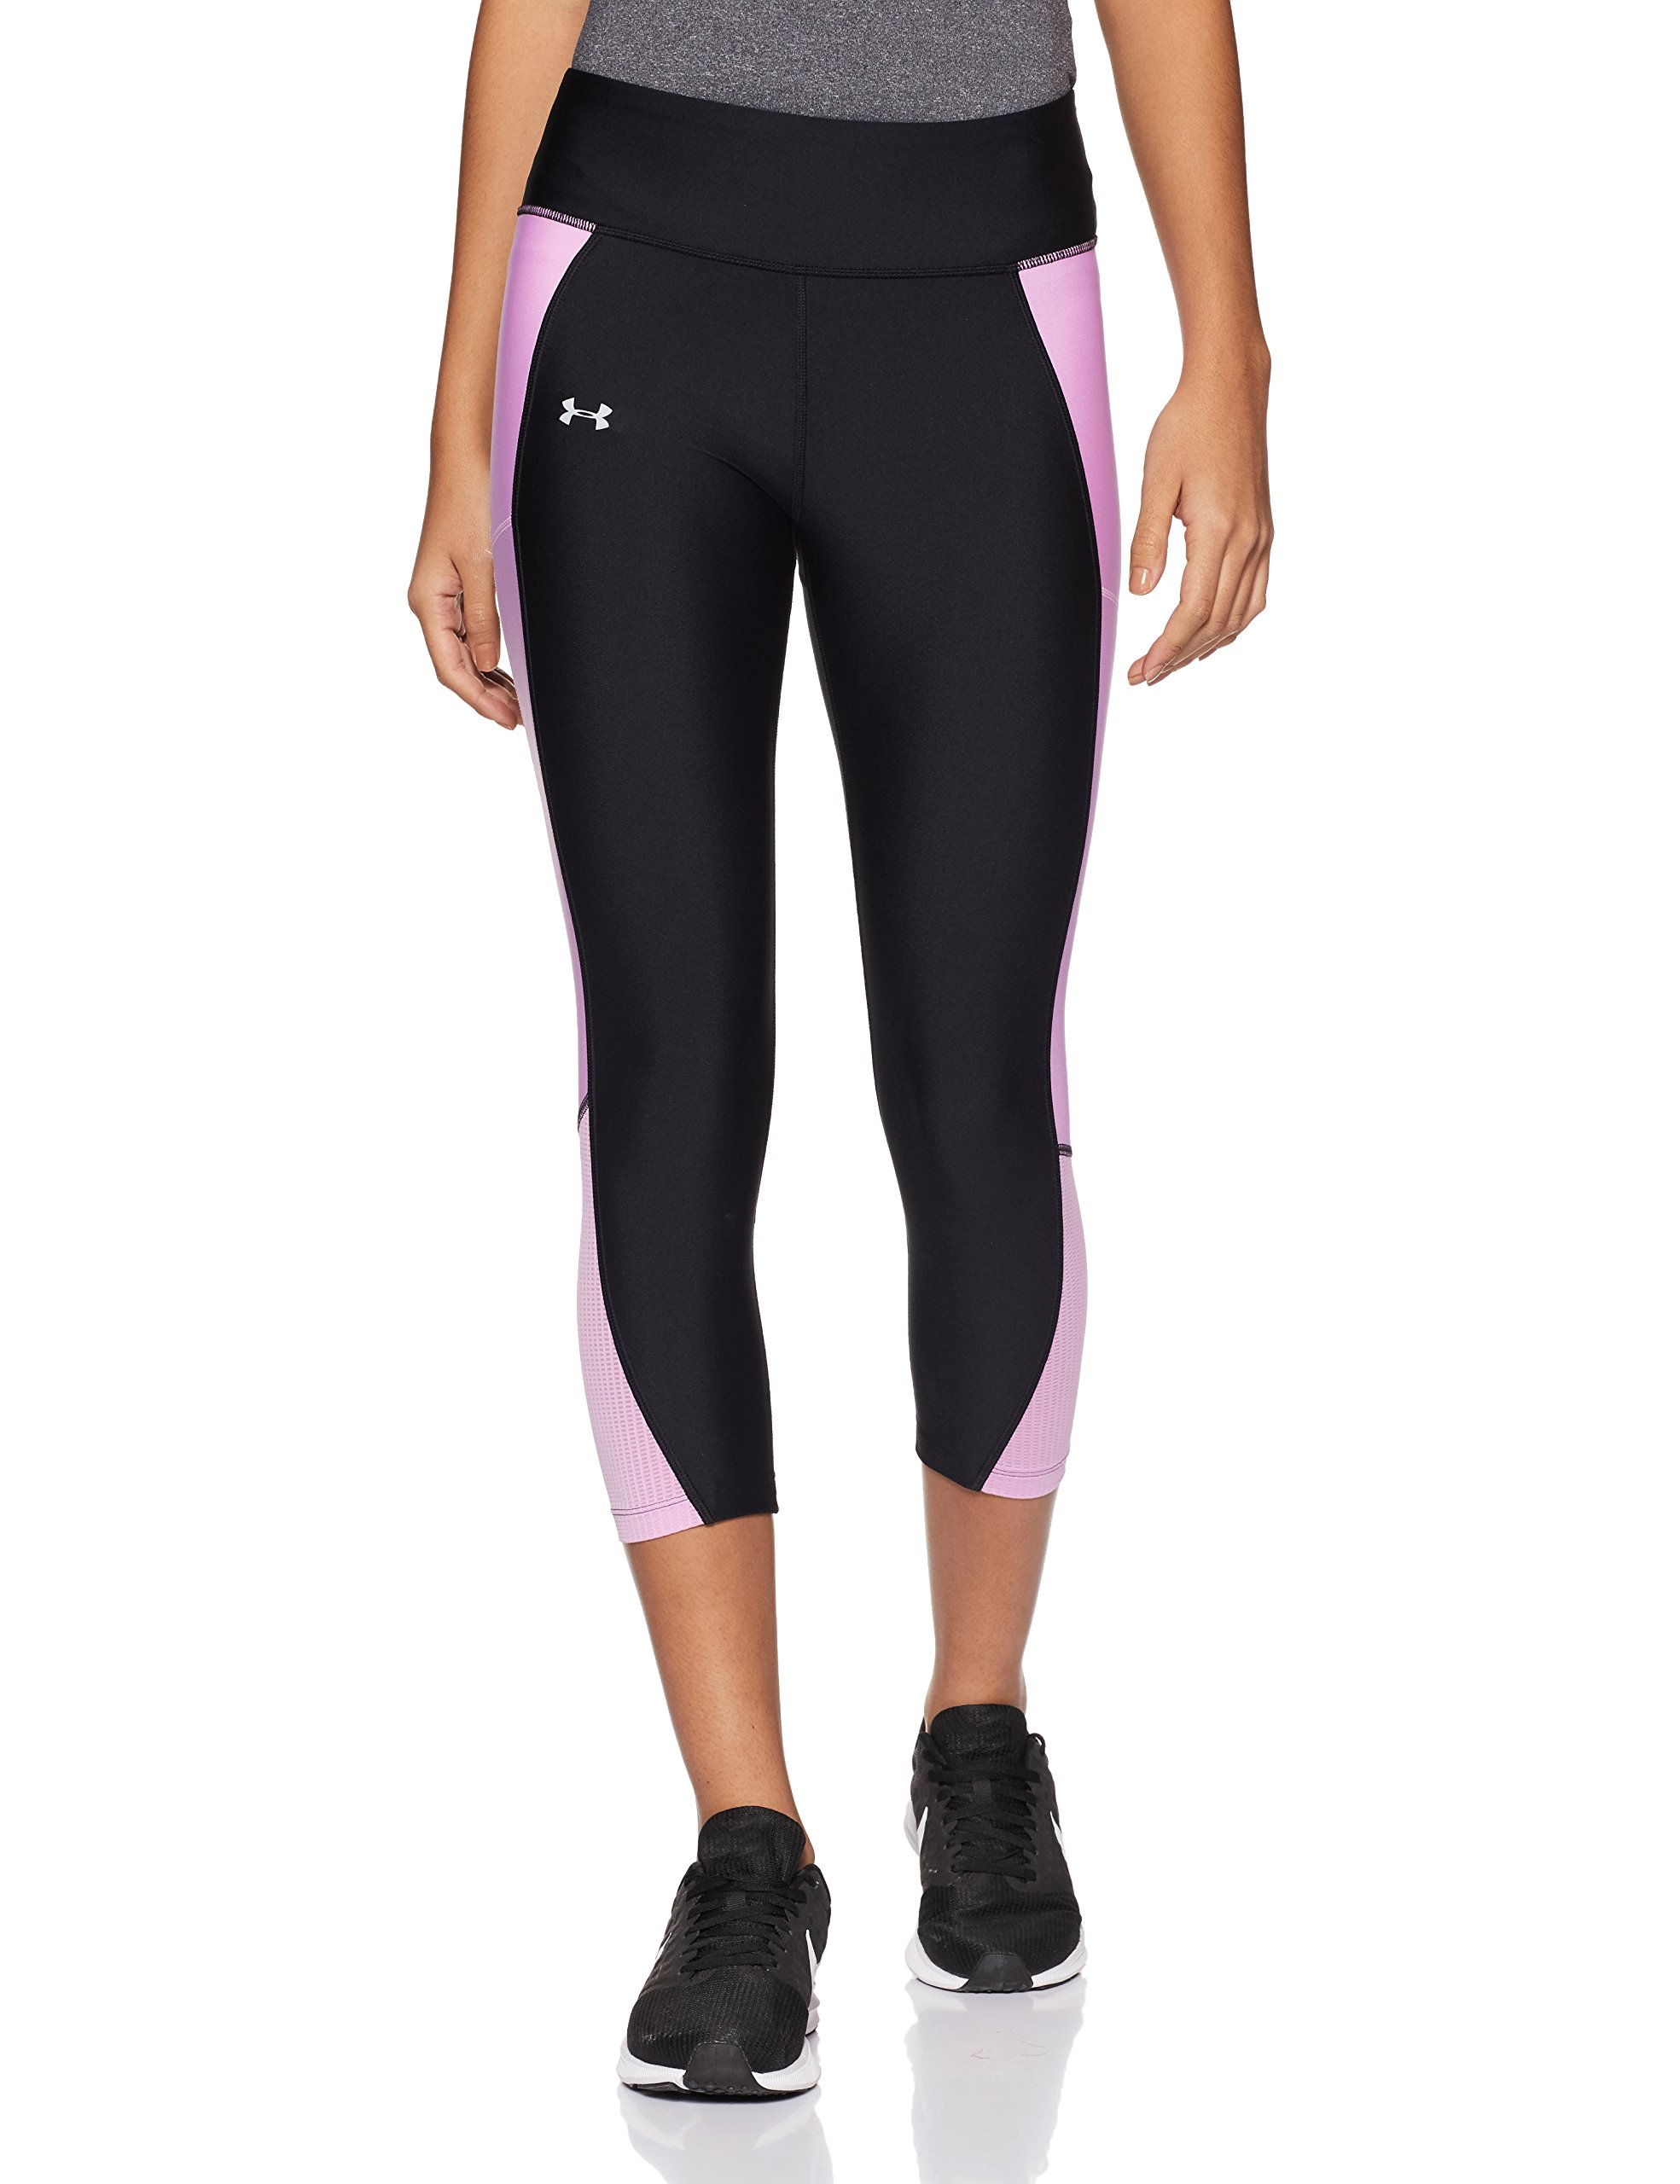 Under Armour Women's Fly-By Capri,Black (015)/Reflective, X-Small